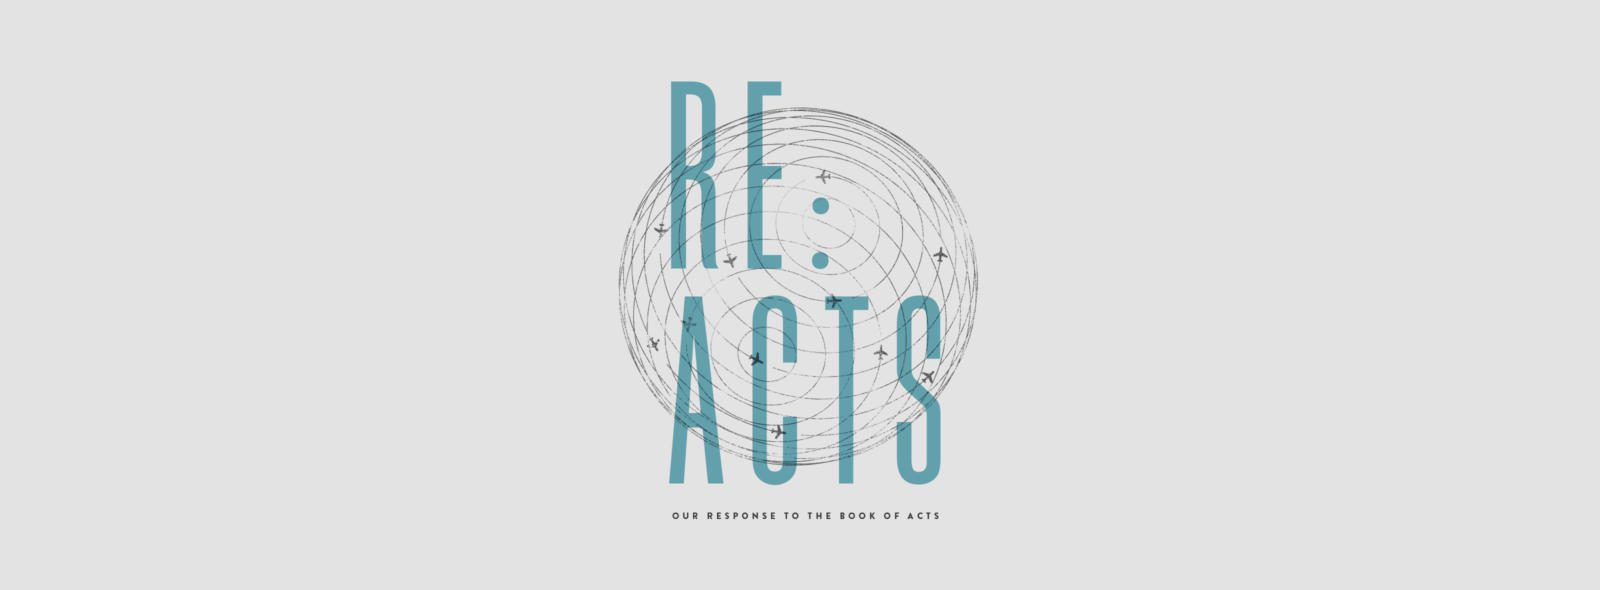 Re: Acts IV | Our Response to the Book of Acts – Lindale